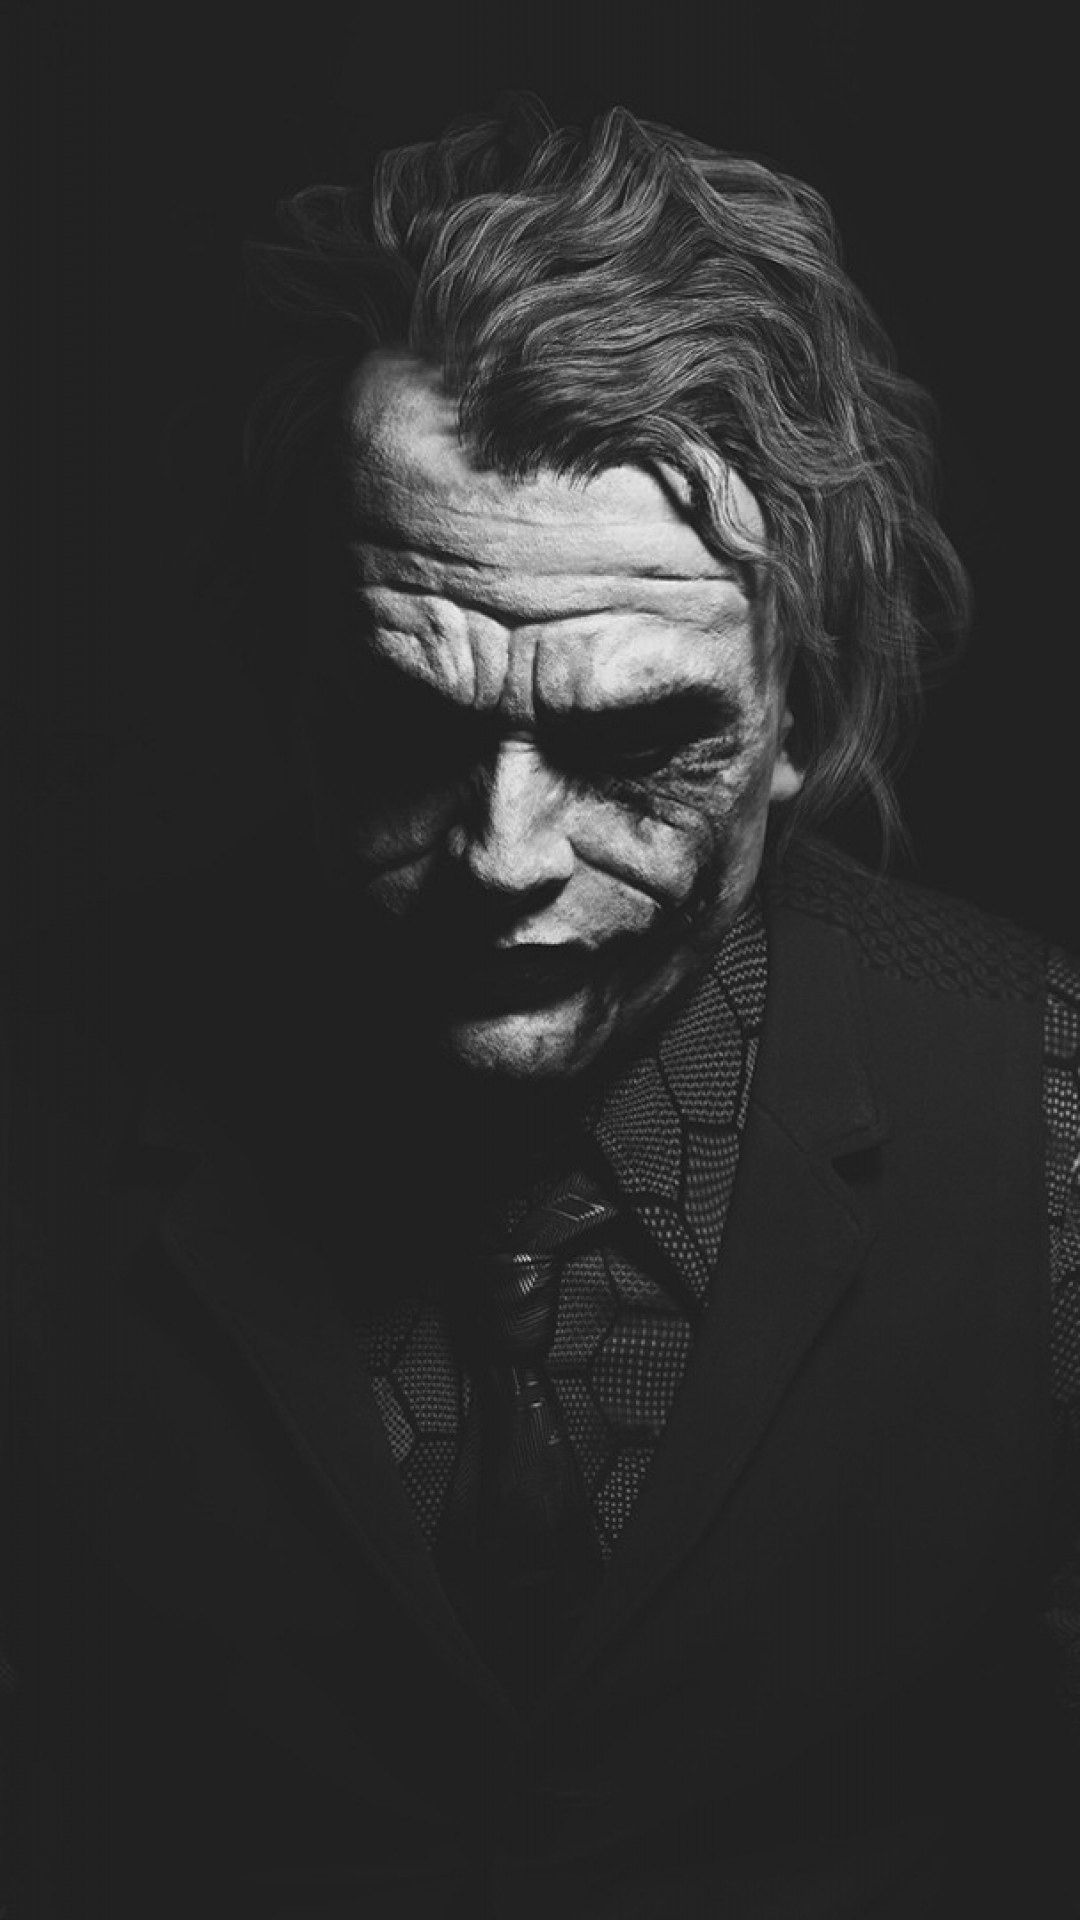 Joker Iphone Wallpapers Top Free Joker Iphone Backgrounds